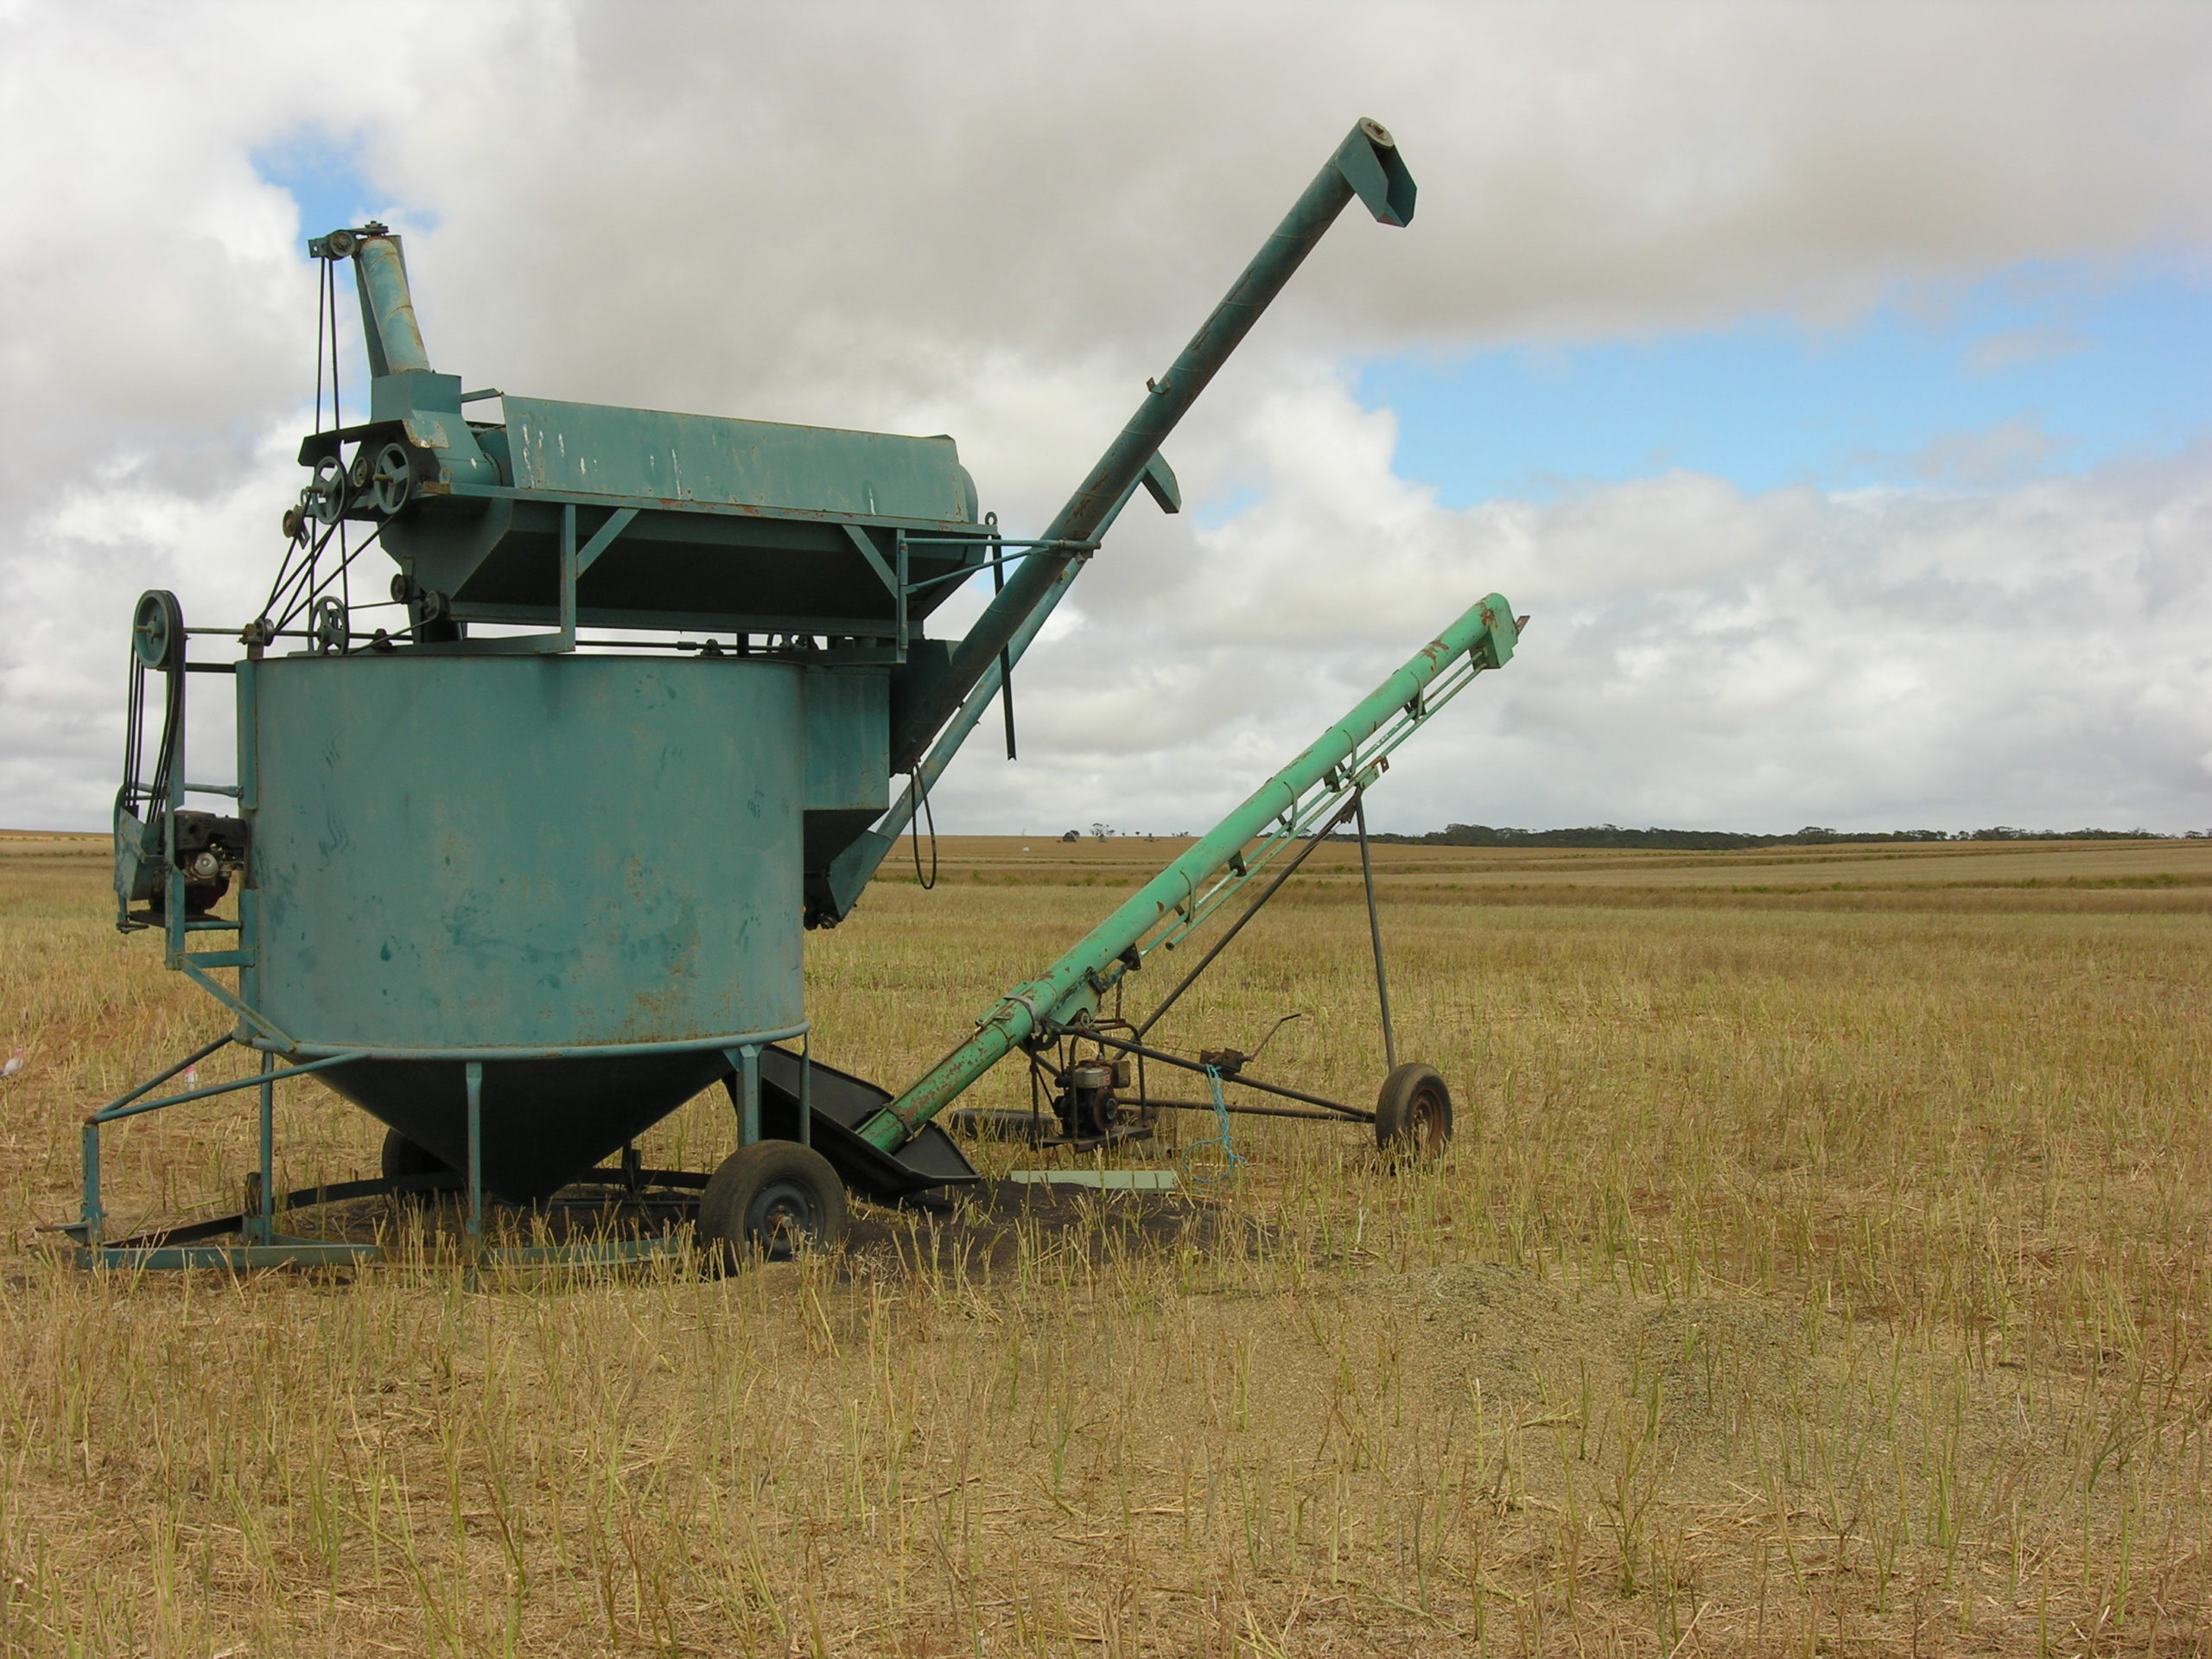 Any cleaning of grower-retained seed is beneficial for reducing weed pressure in the next crop. An in-field rotary screen cleaner can be expected to leave an average 80 weed seeds per 10 kg of grain while a gravity table will produce the cleanest sample, leaving an average 20 weed seeds per 10 kg of grain.